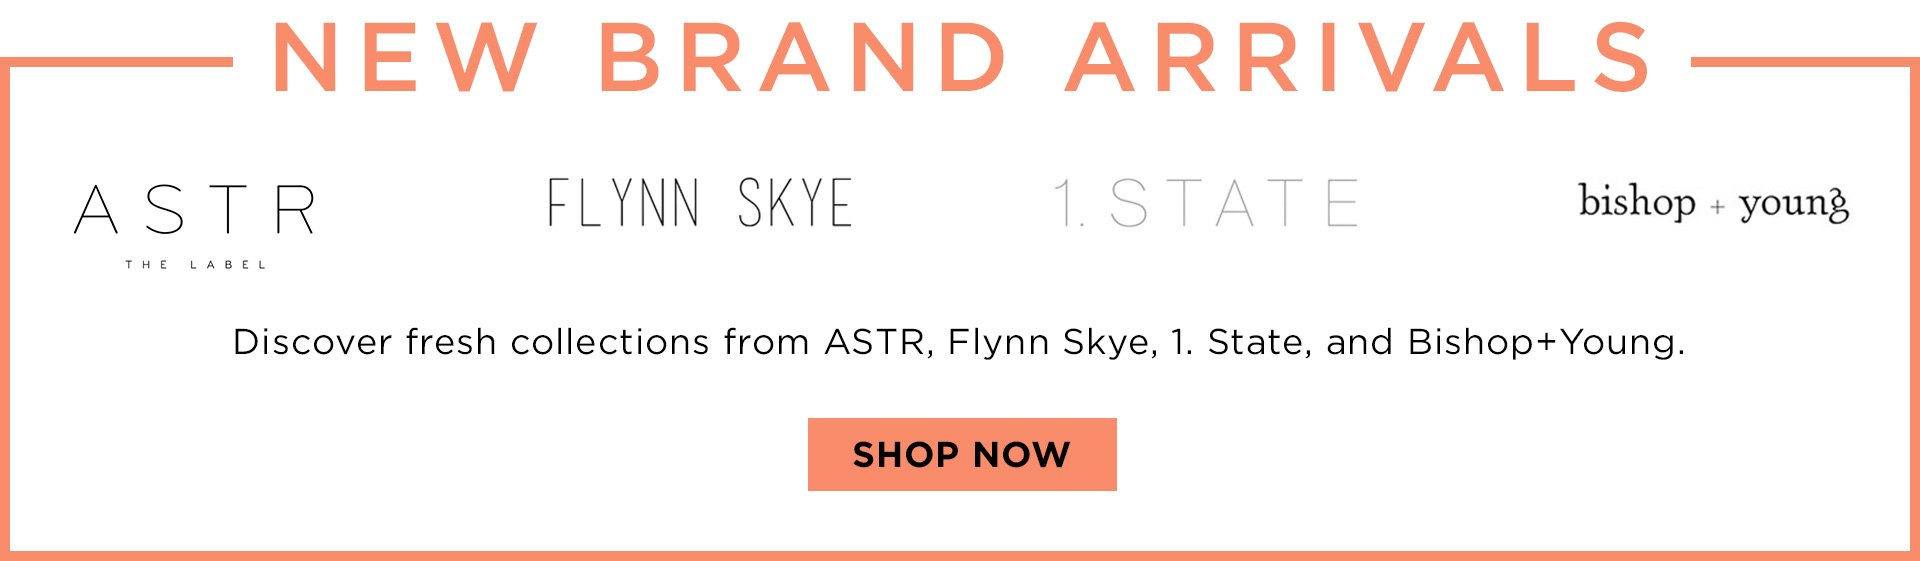 New Brand Arrivals Banner. ASTR, Flynn Skye, 1 State, Bishop Young